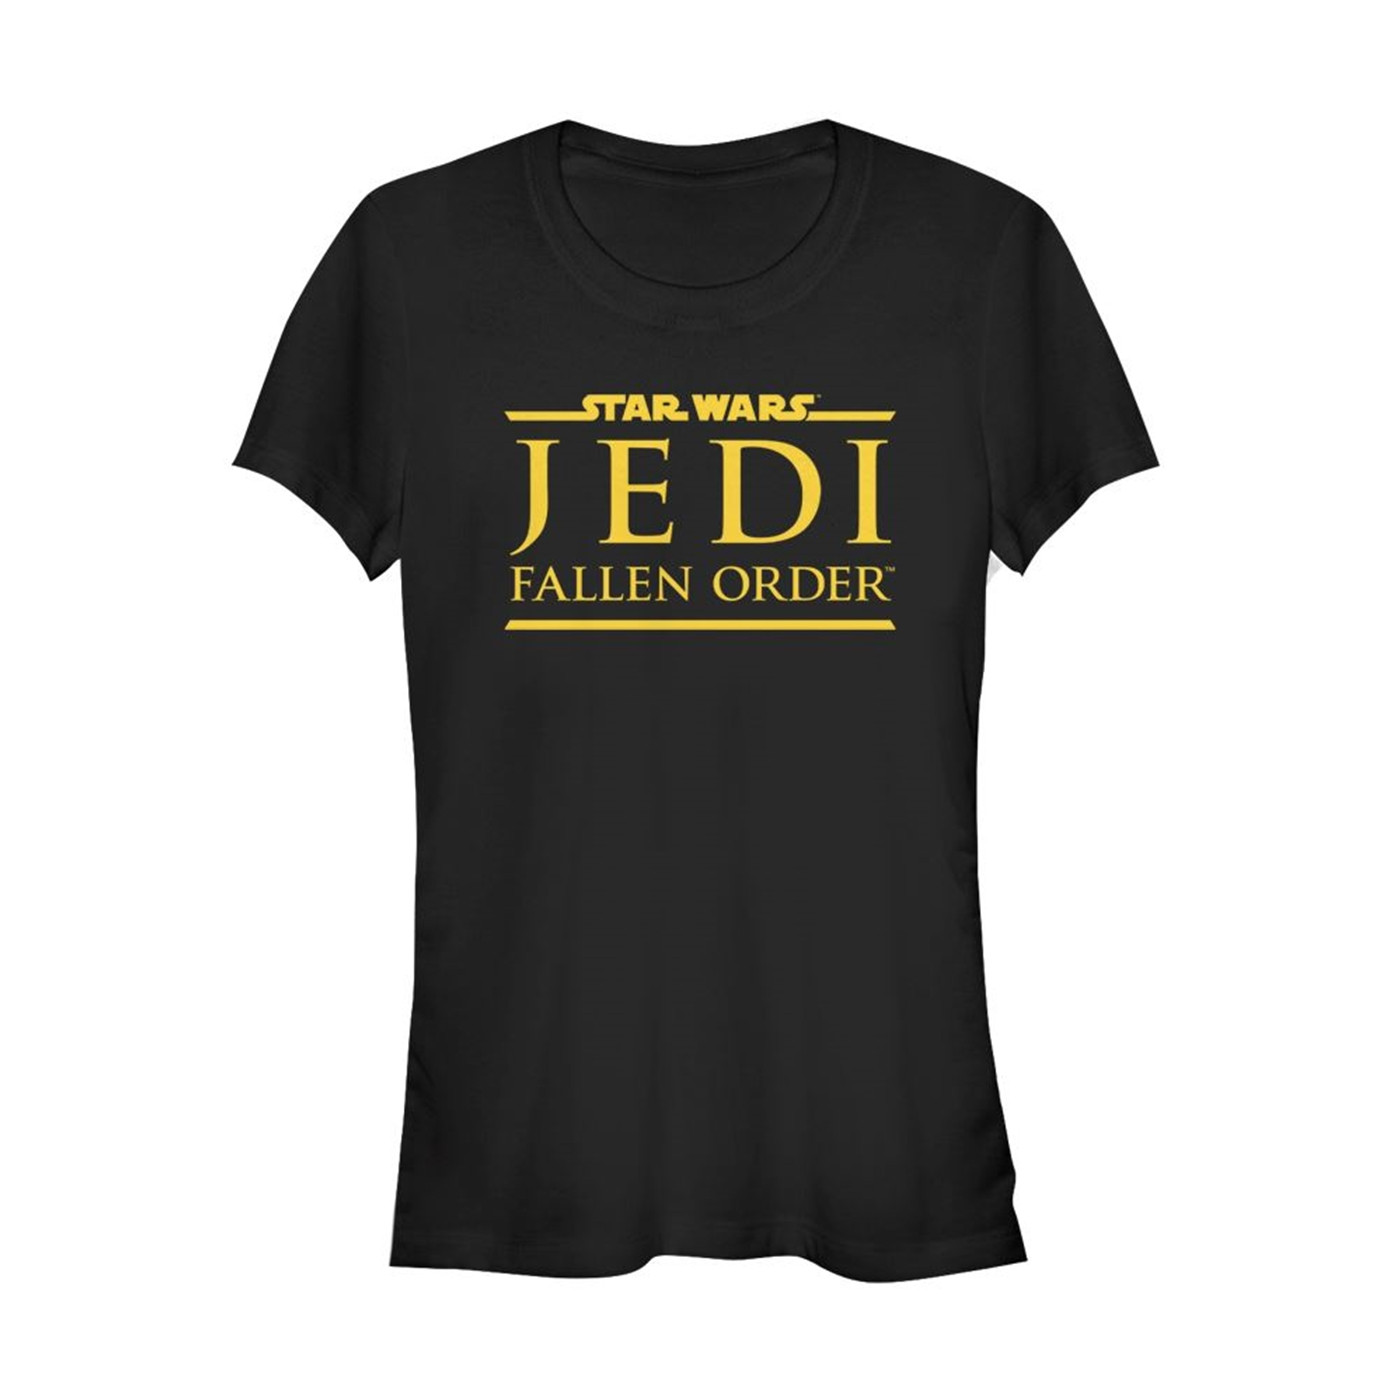 Star Wars Jedi Fallen Order Women's T-Shirt